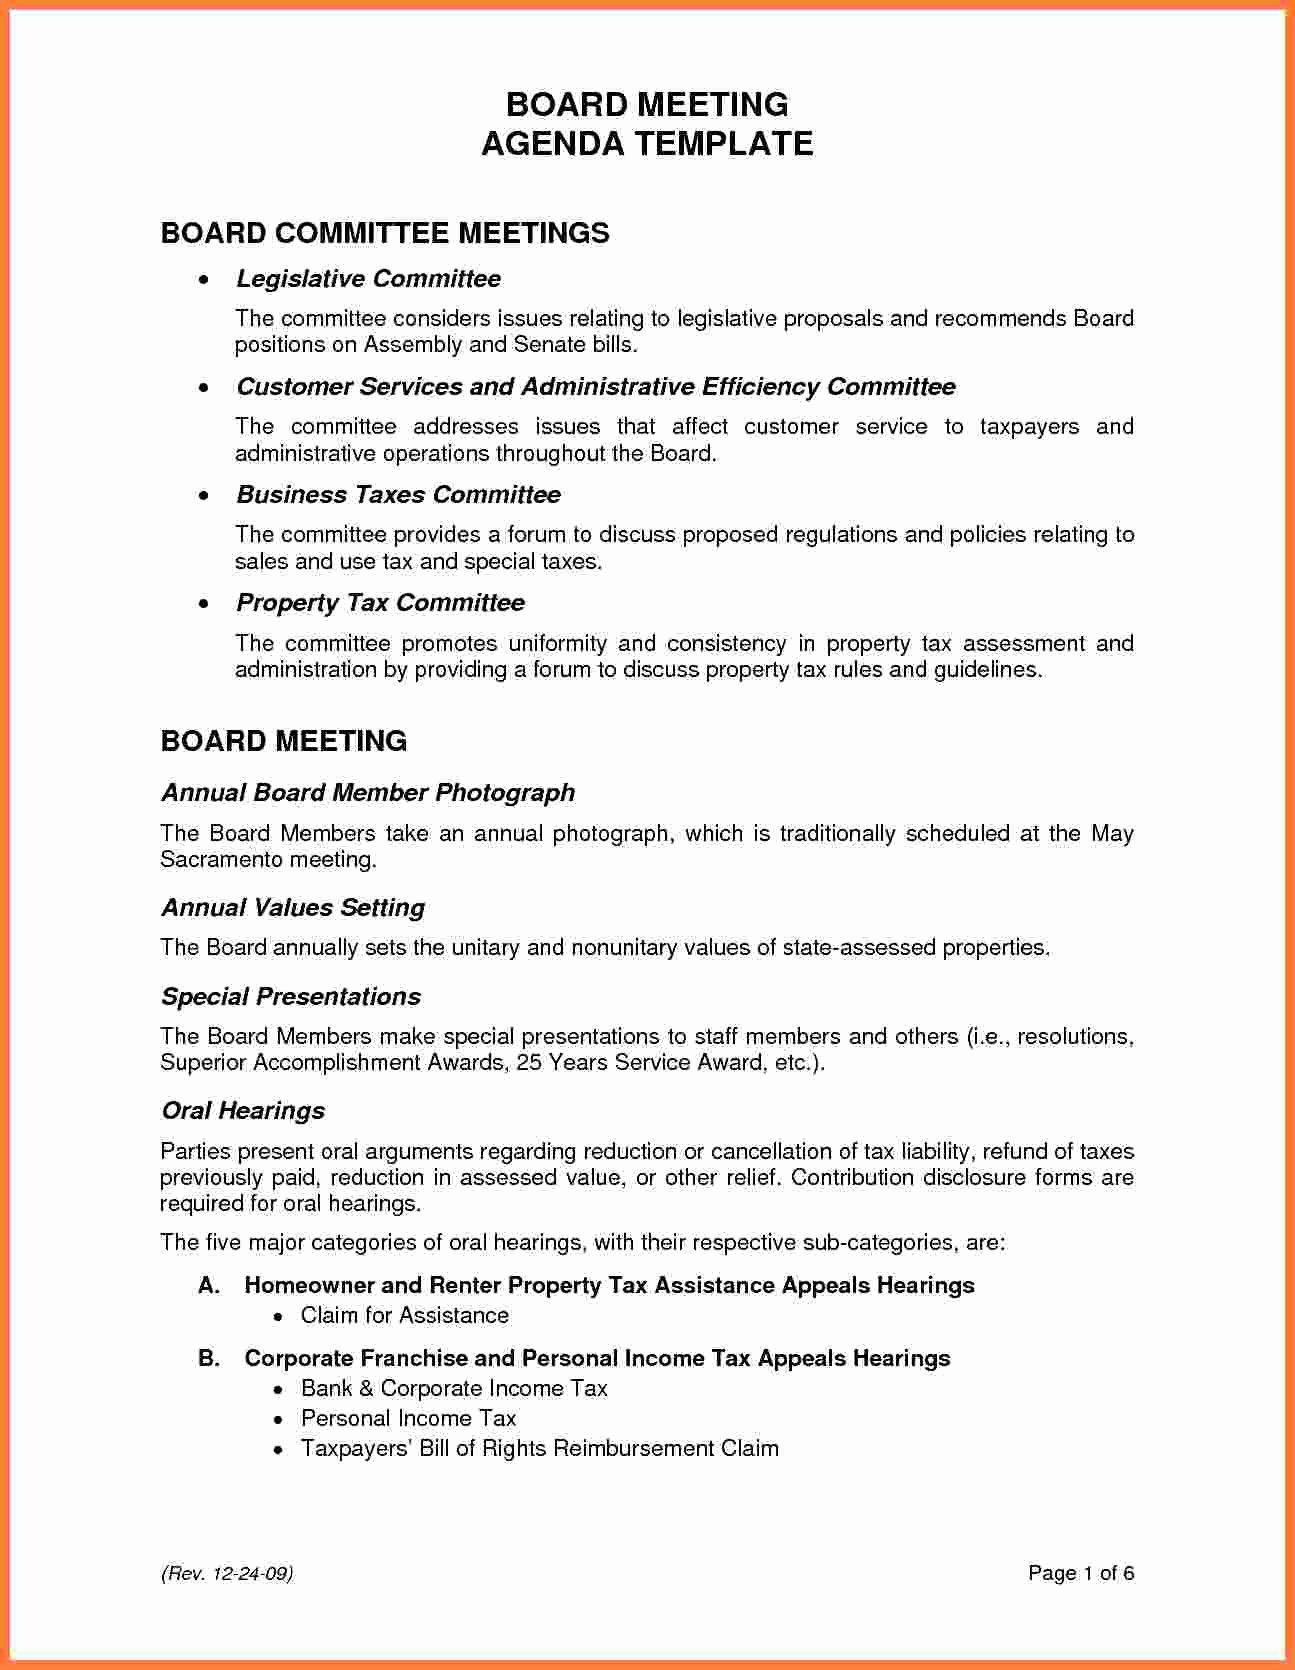 Board Meeting Agenda Template Lovely 5 Board Meeting Agenda